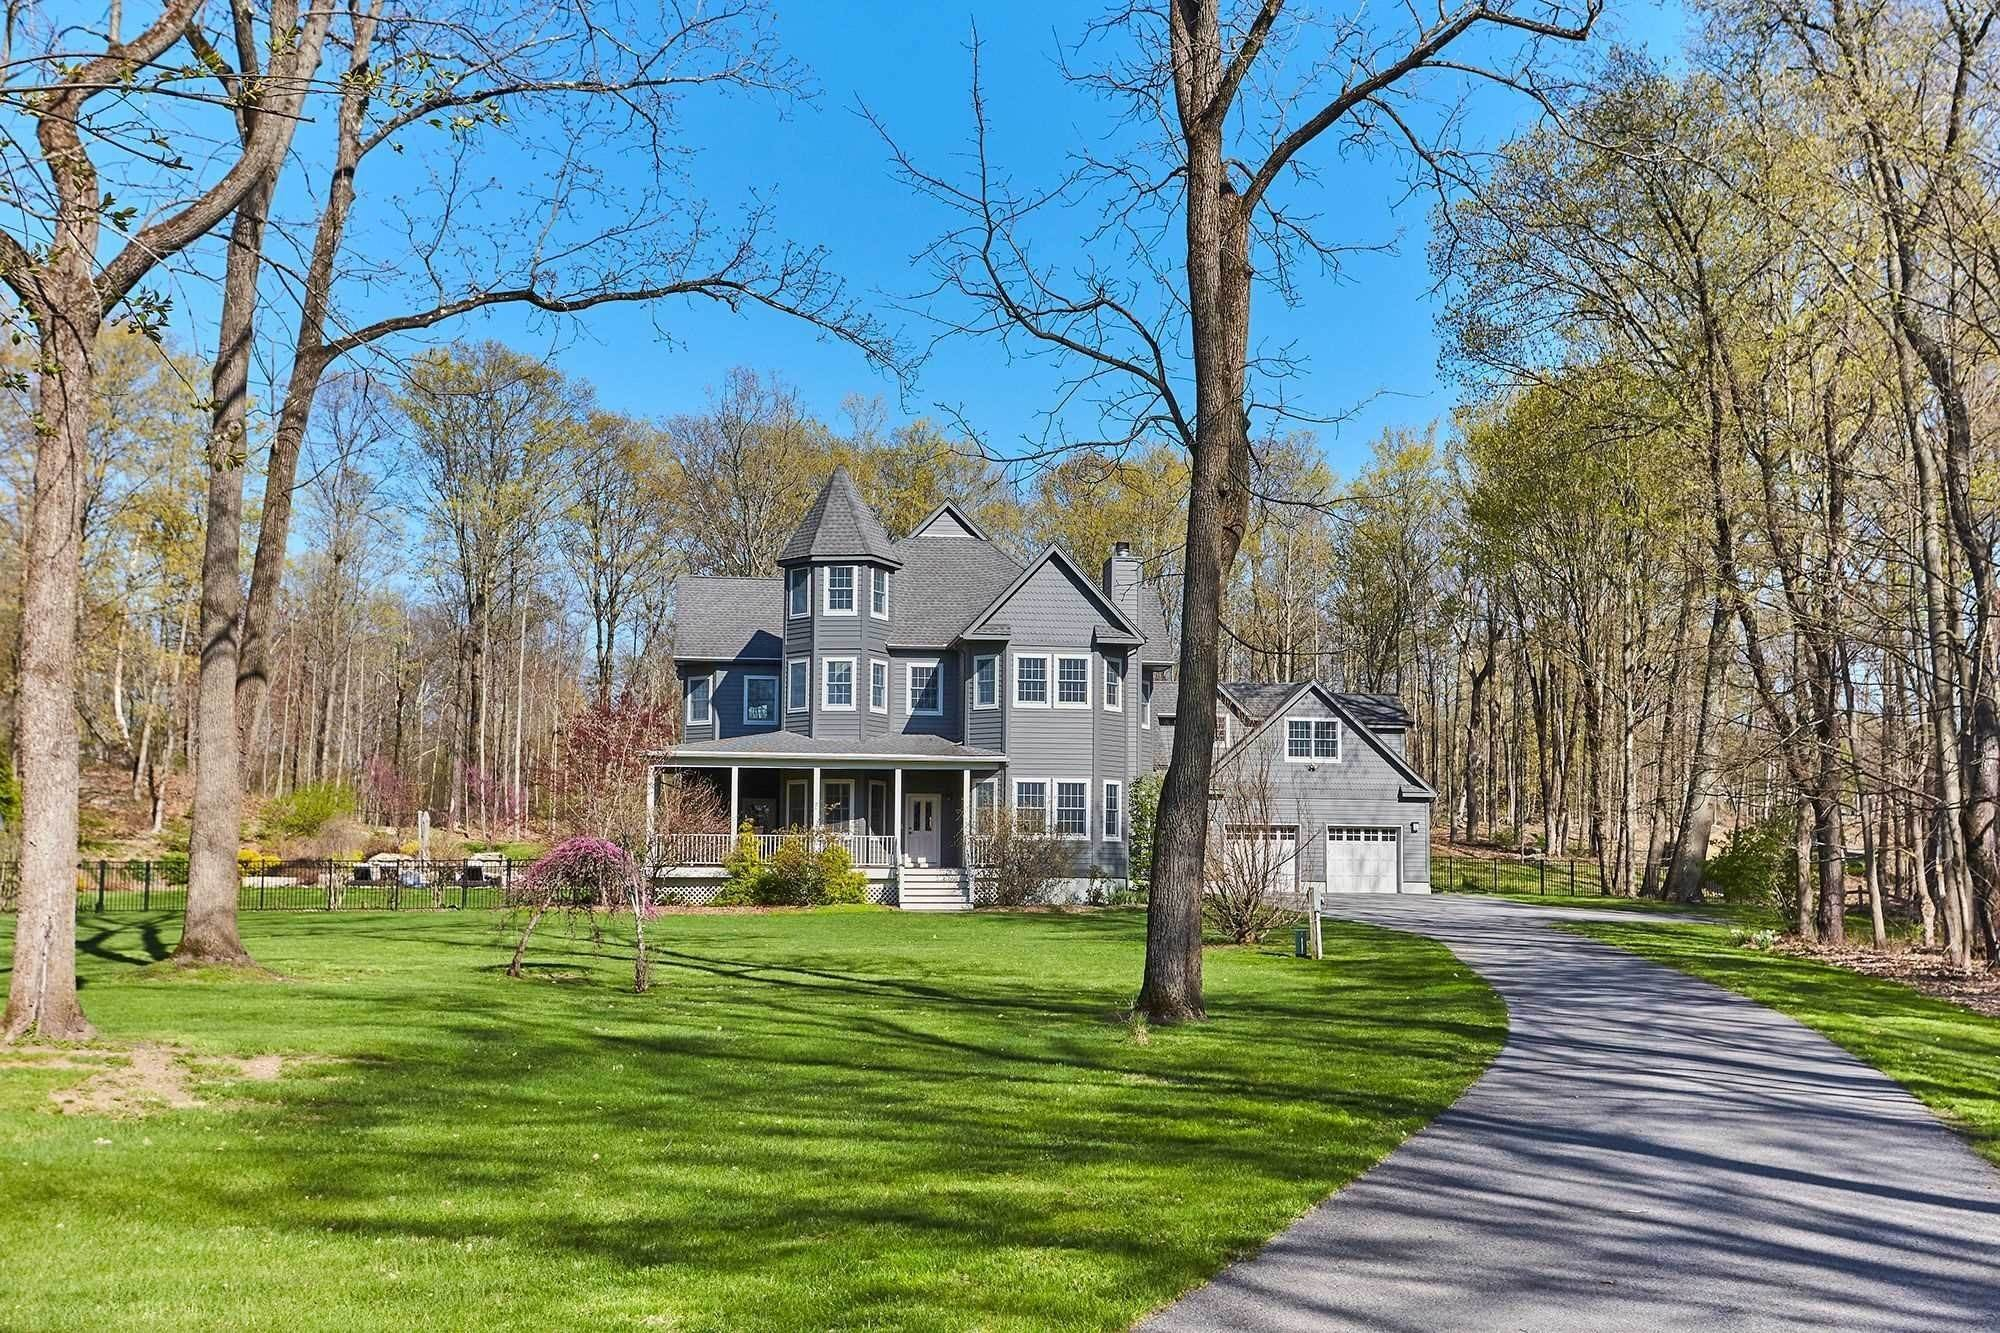 Single Family Homes for Sale at 77 MILL Street Rhinebeck, New York 12572 United States